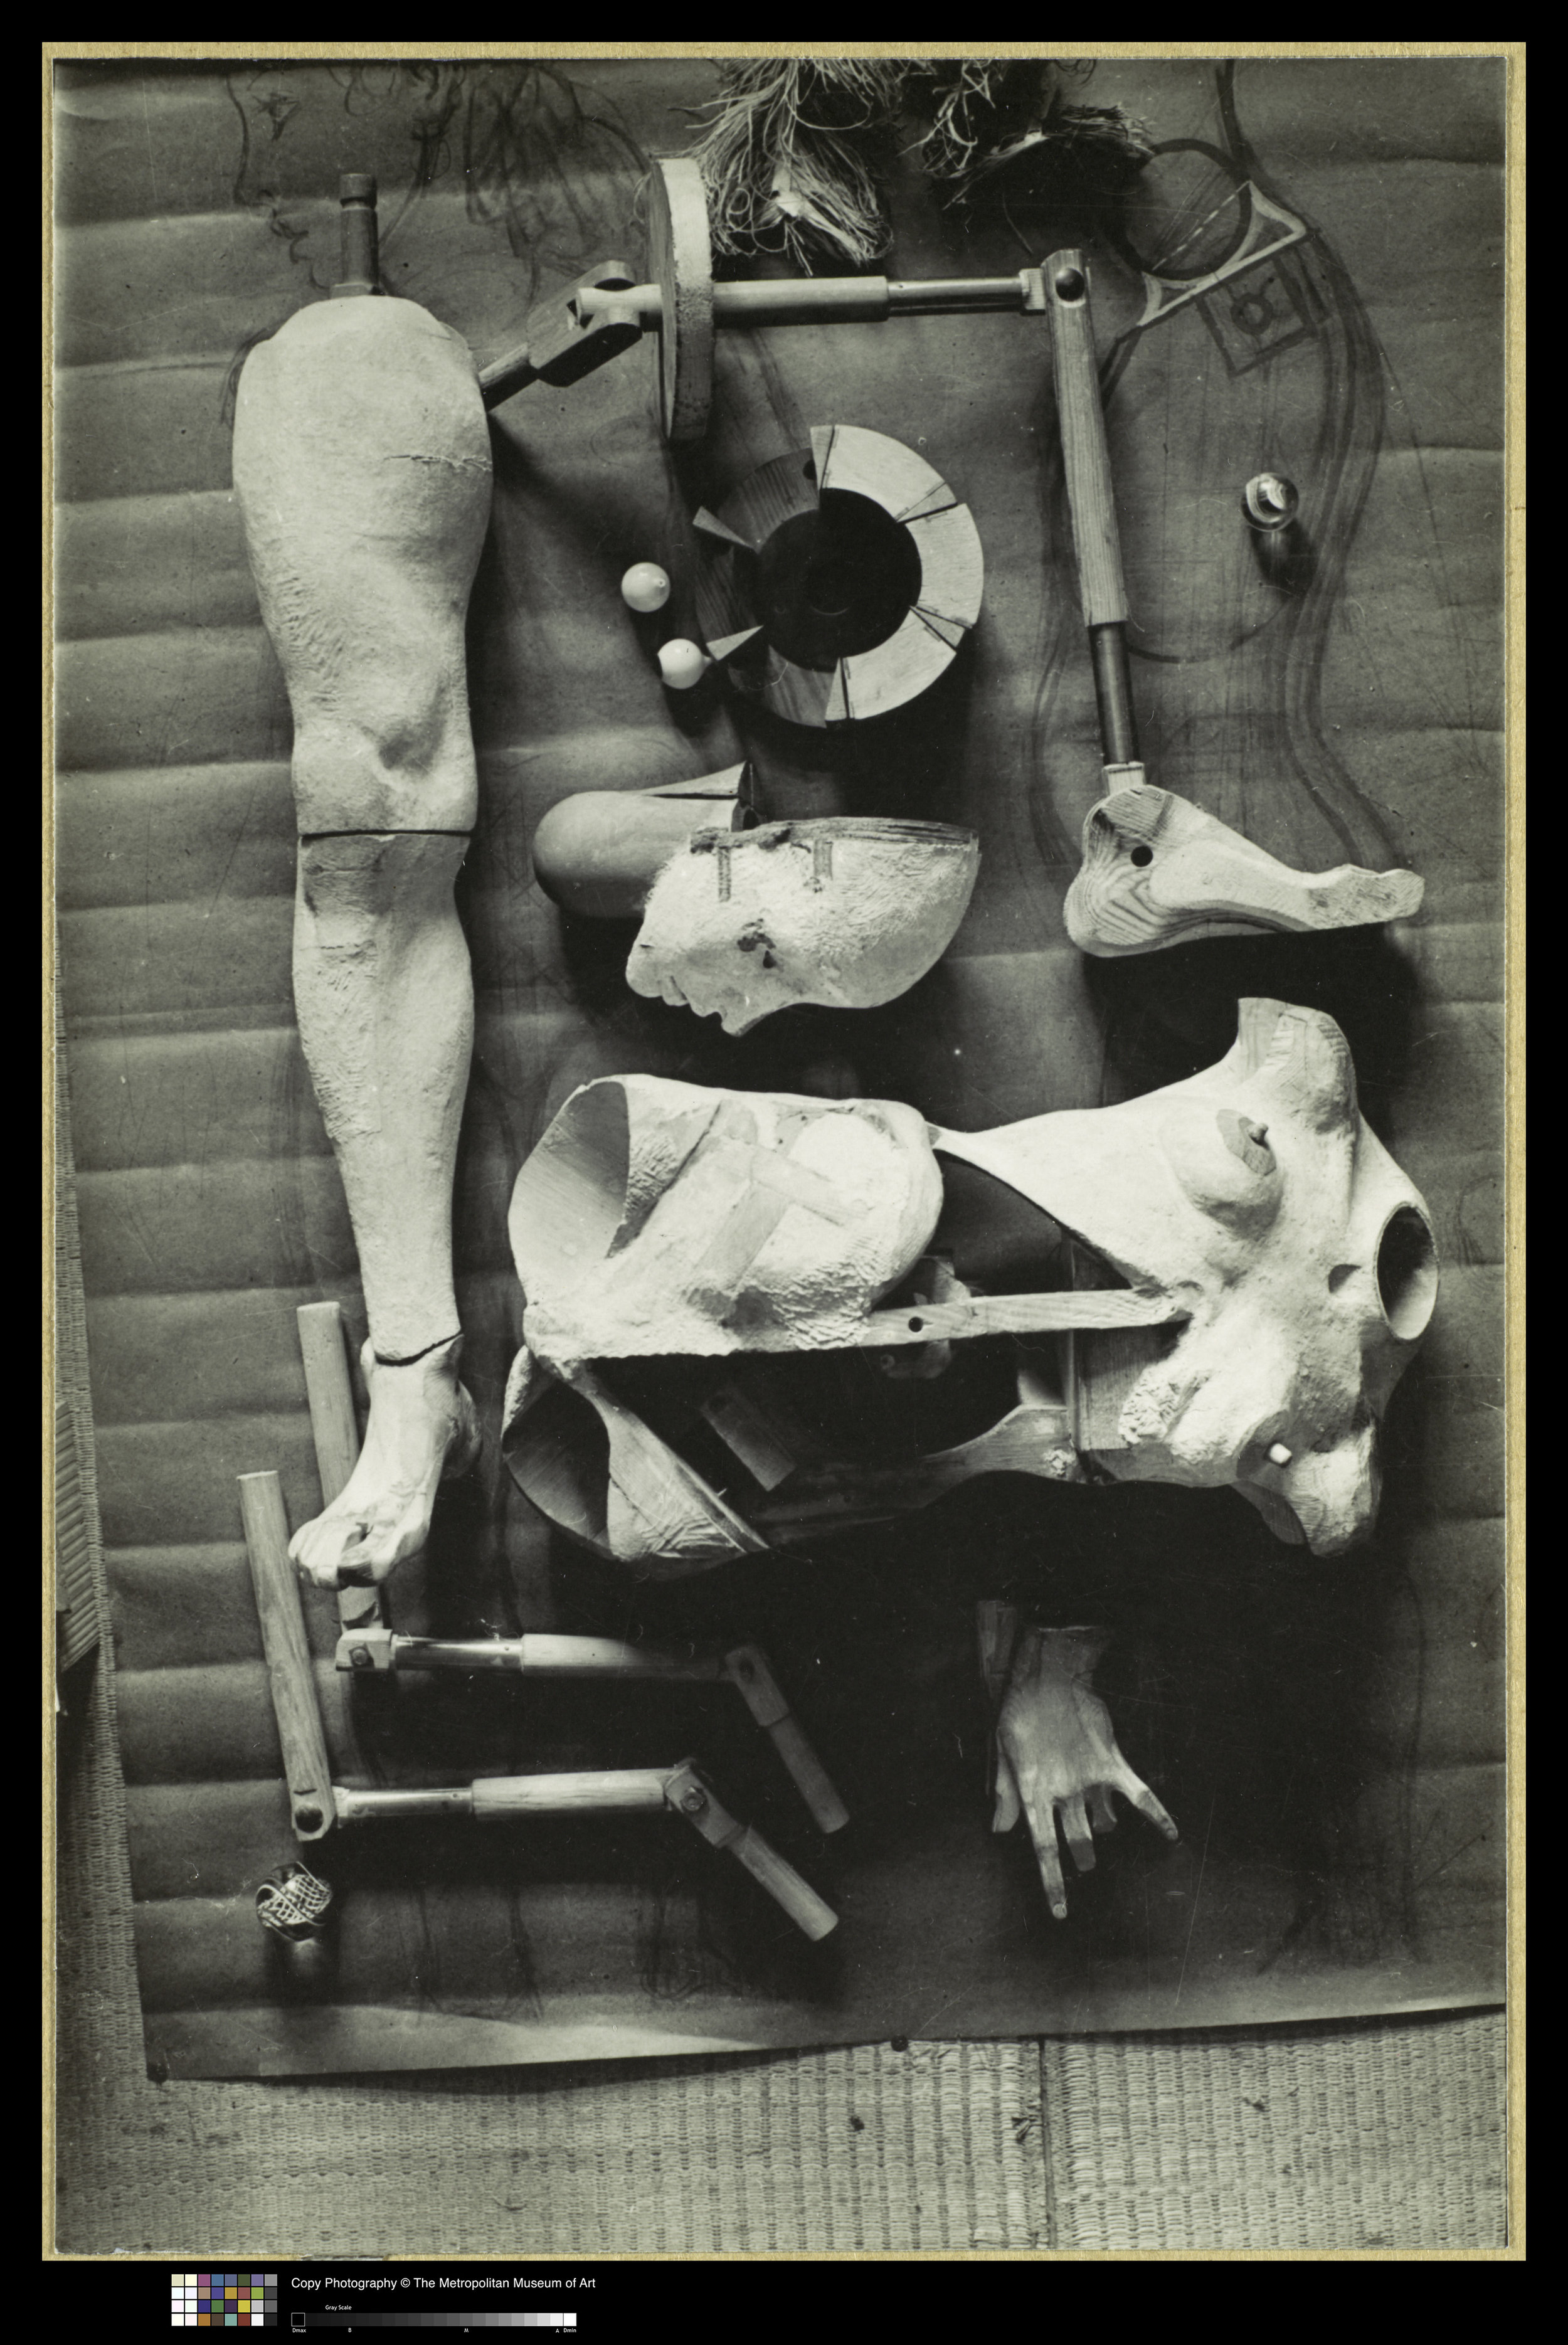 Hans Bellmer,  The Doll (La Poupée) , 1934-35. Gelatin Silver Print, 11 5/8 x 7 5/8 in. Courtesy of The Met. © 2019 Artists Rights Society (ARS), New York / ADAGP, Paris